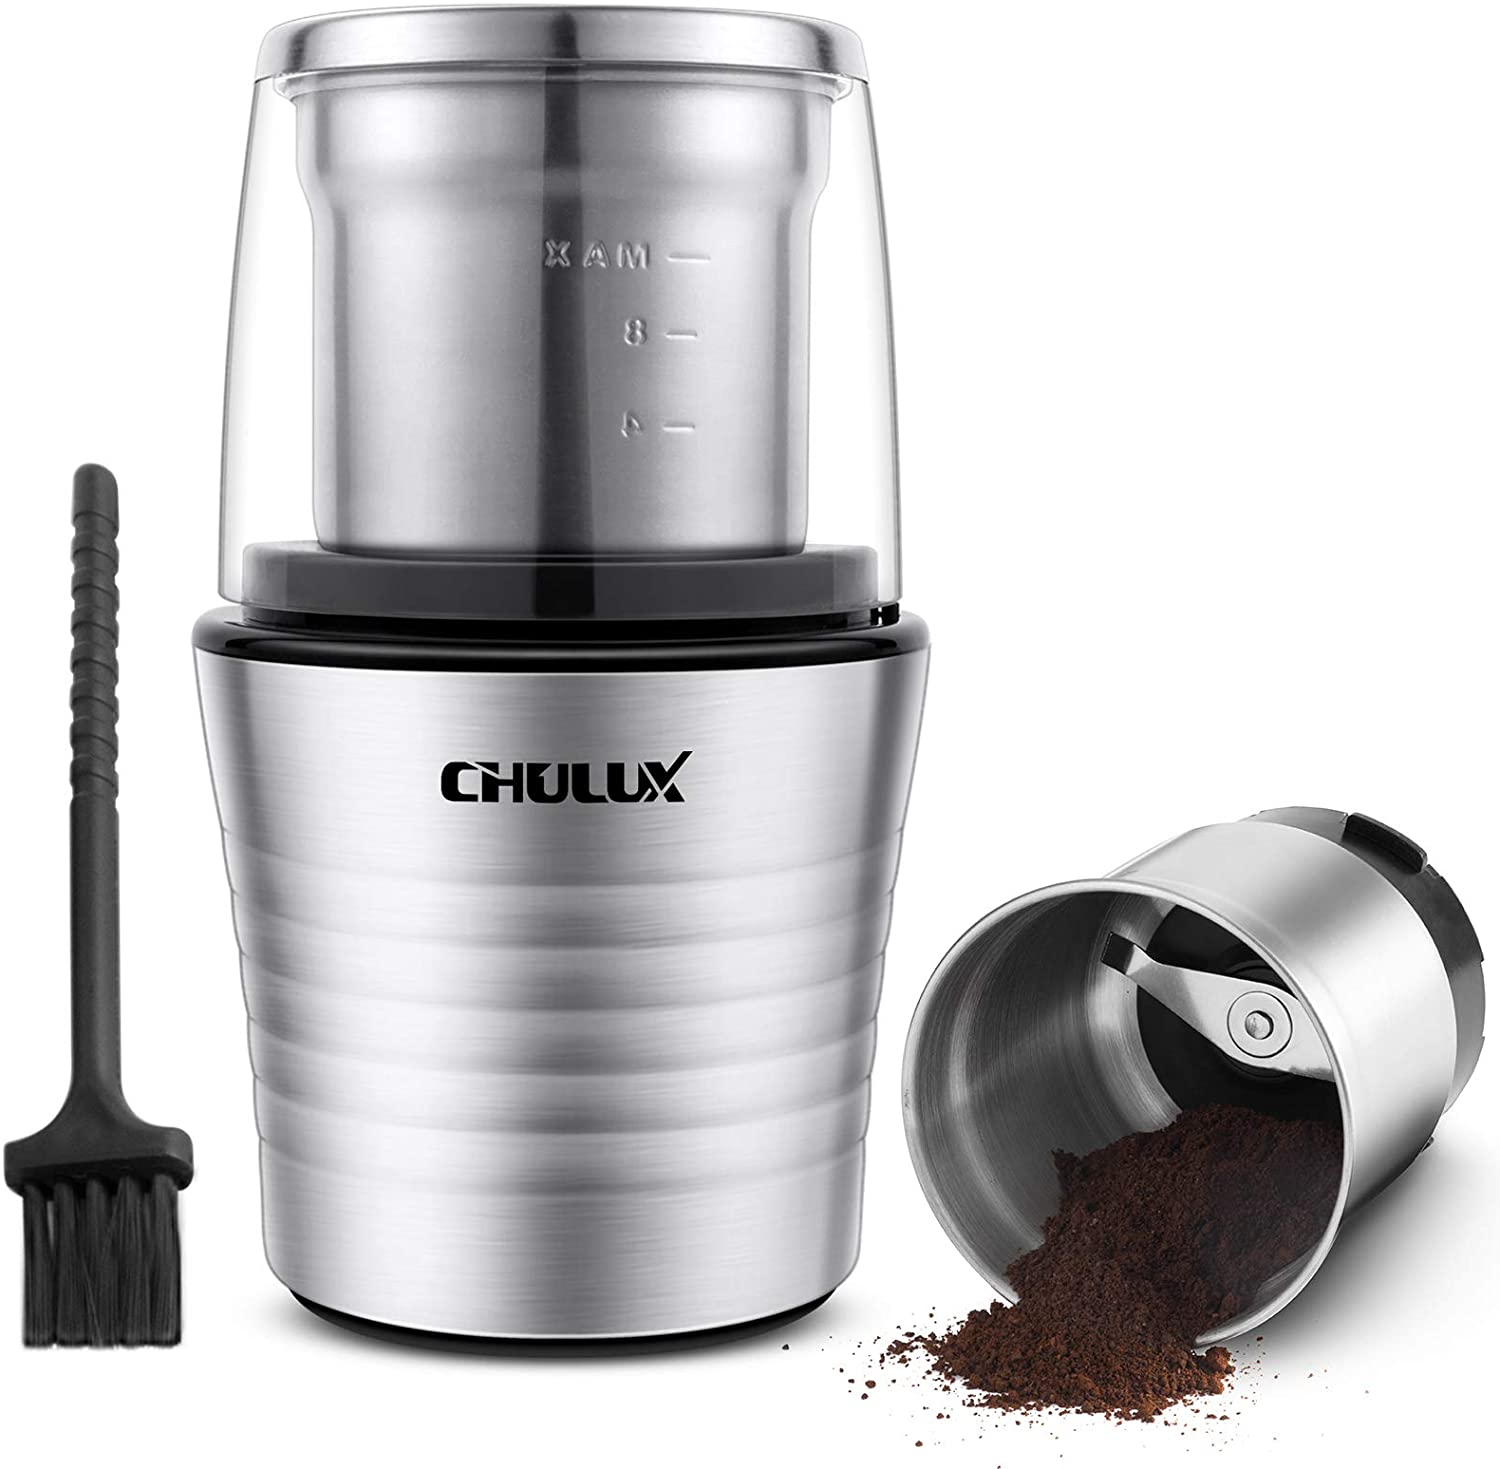 CHULUX Stainless Steel Electric Grinder with Lid Activated Safety Switch for Coffee Bean,Dried Spices and Wet Ingredients,Two 2.5 Ounce Removable Bowls with Built-In SS304 Blade,A Cleaning Brush Included